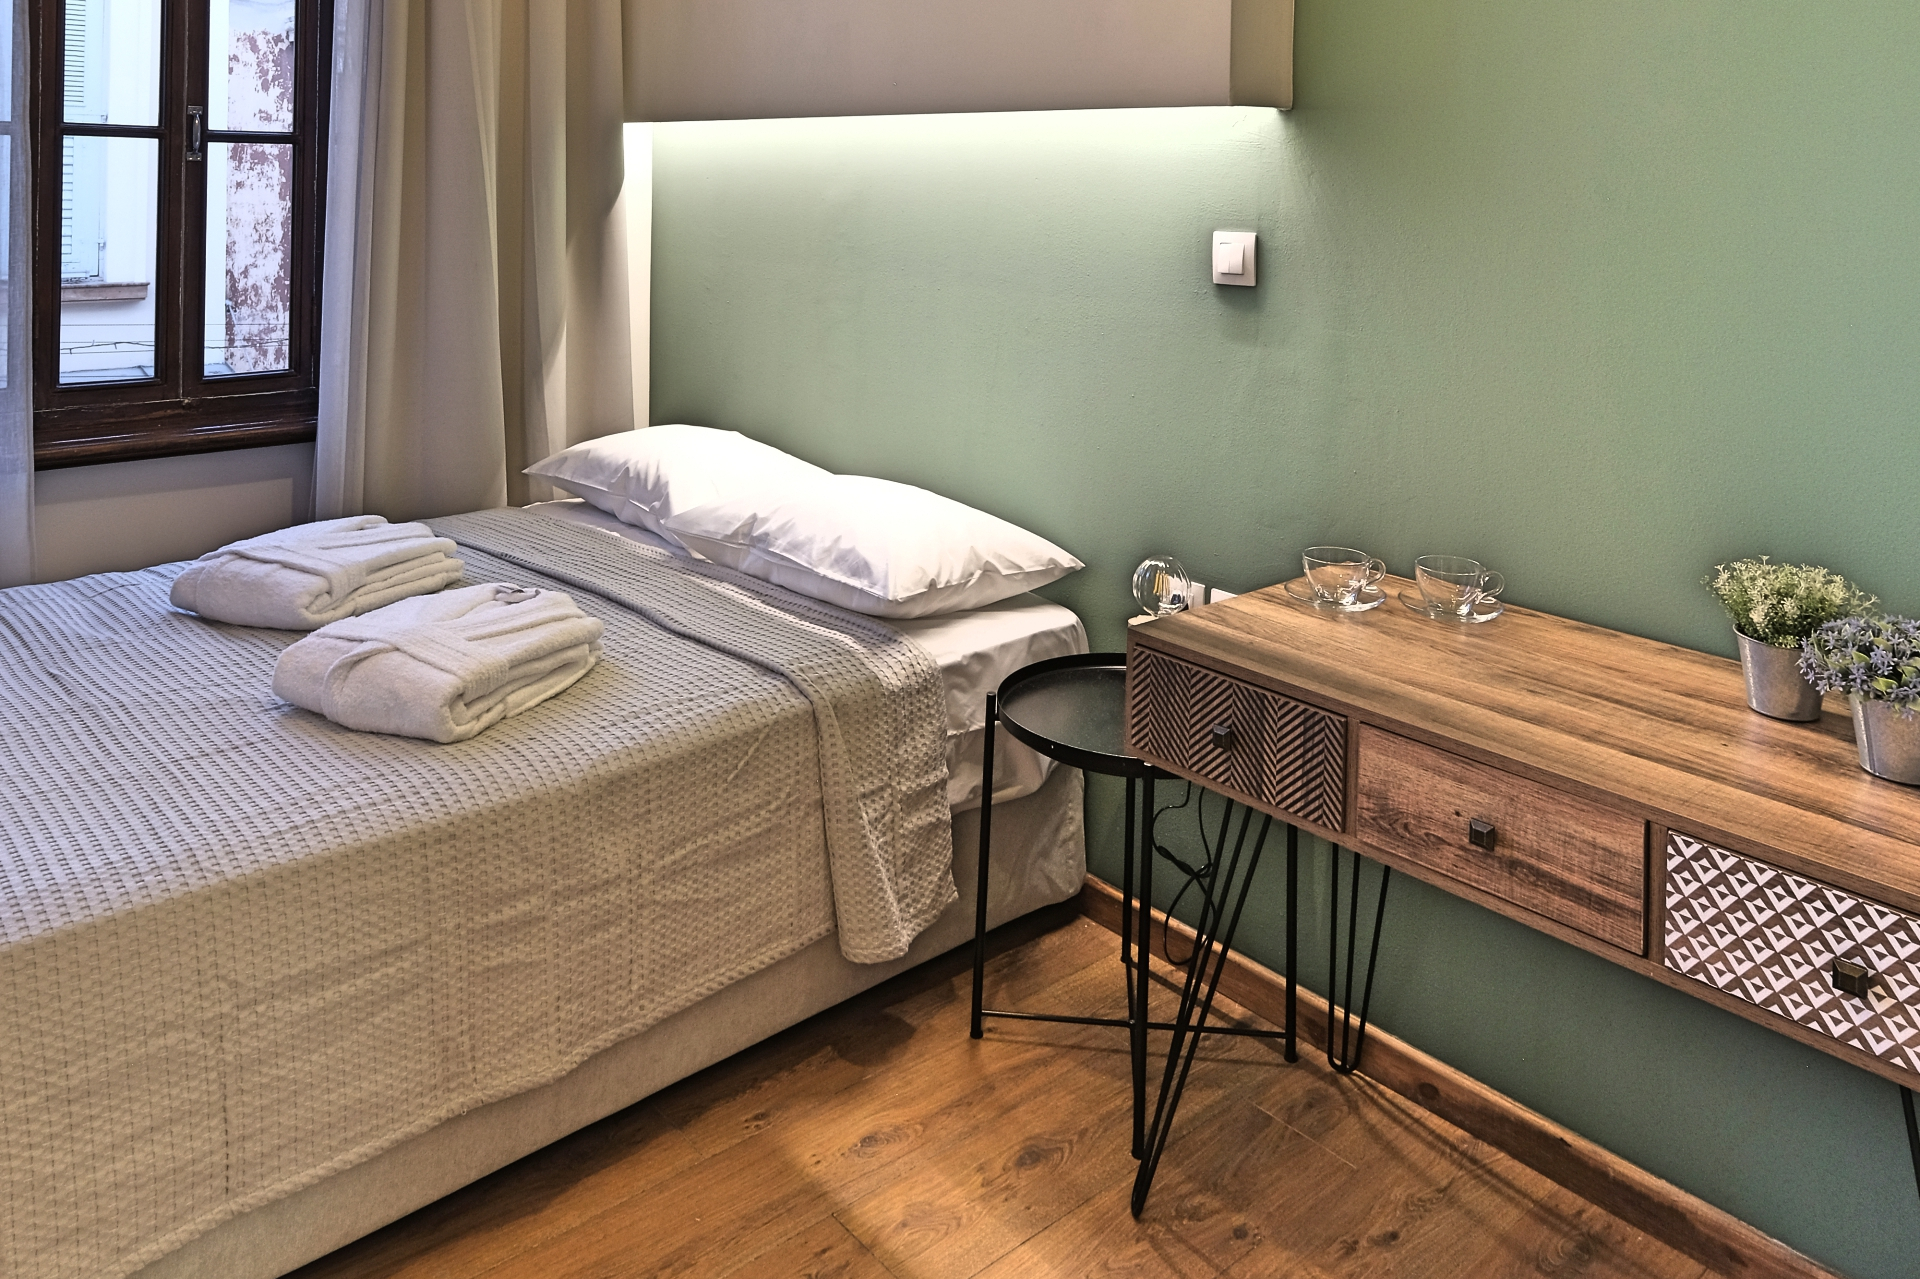 Budget Single Room Bed & Desk - Agora Residence - Hotel in Chios 1